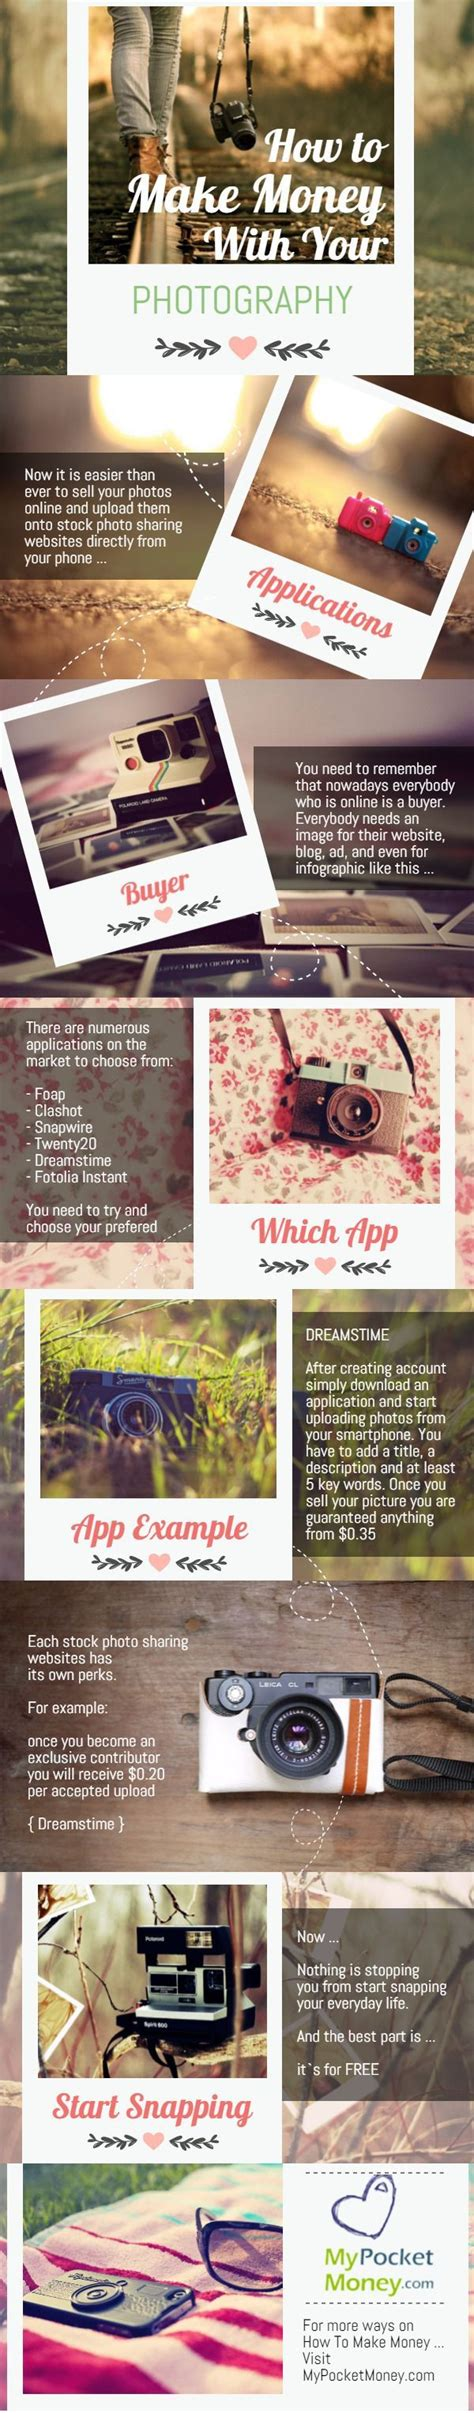 Make Some Quick Money Online - best 25 photography colleges ideas on pinterest